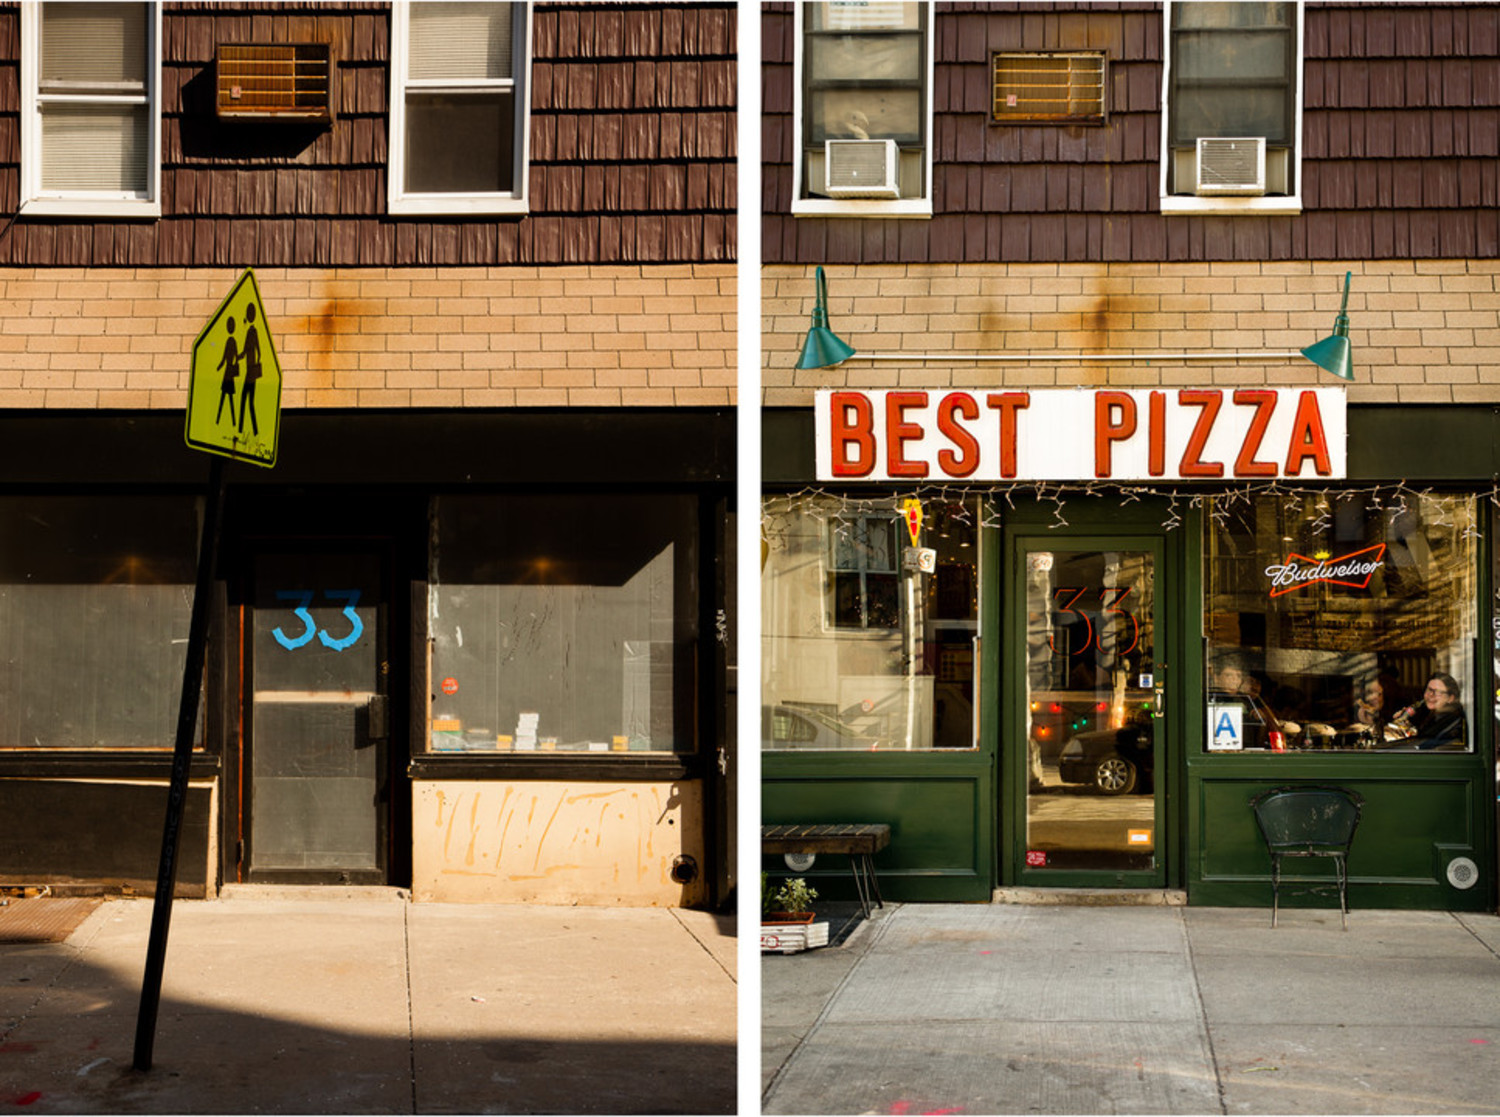 33 HAVEMEYER STREET, 2009 & 2015